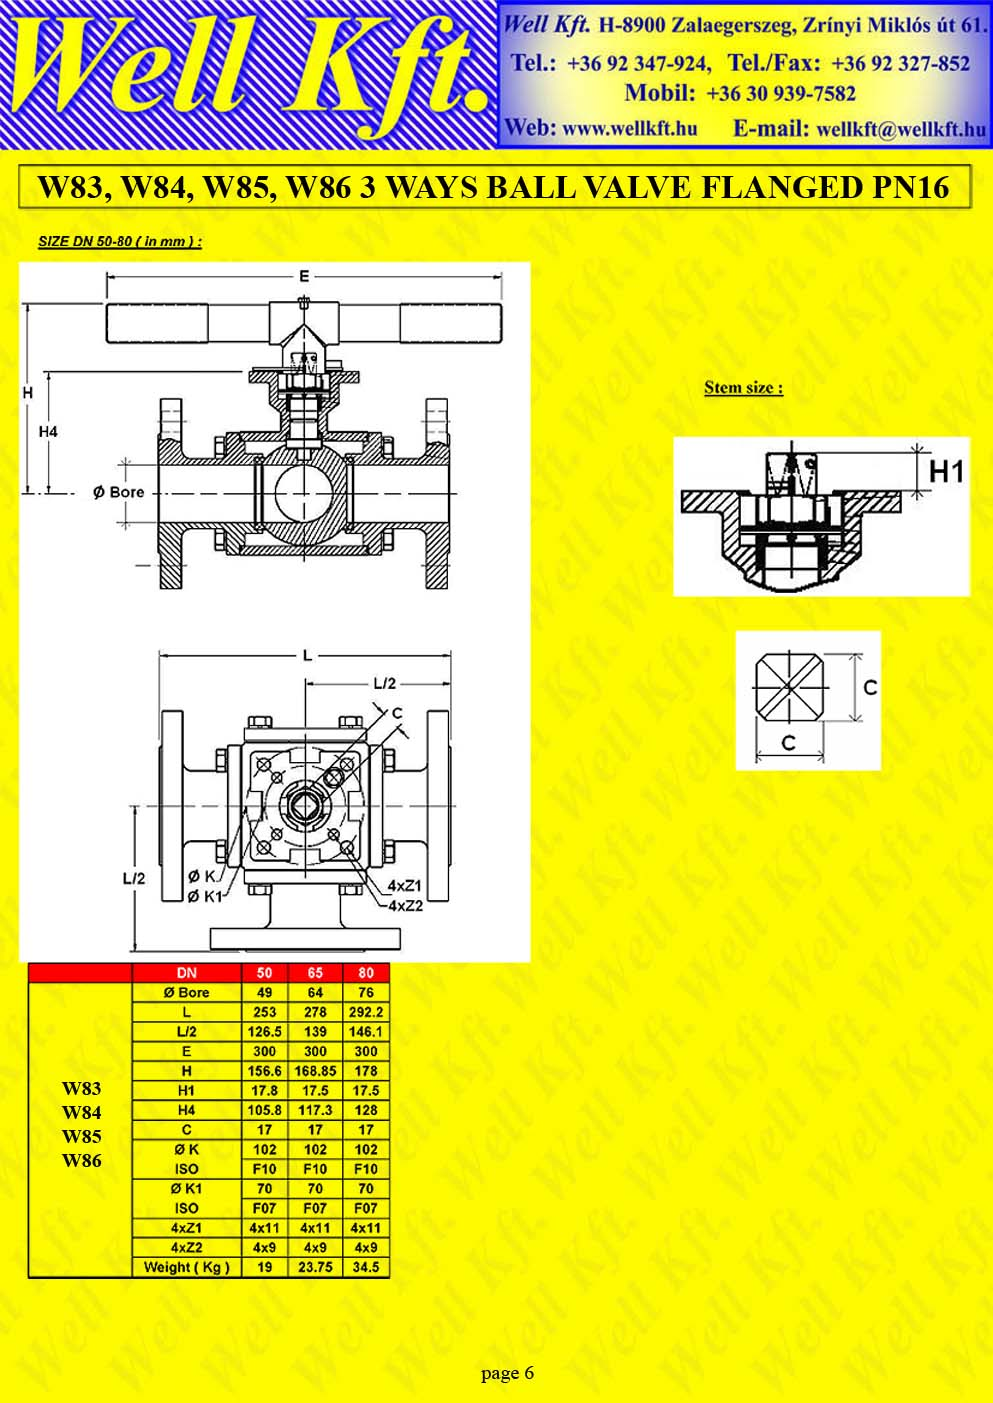 3 ways ball valve stainless steel, carbon steel flanged PN 16 (6.)